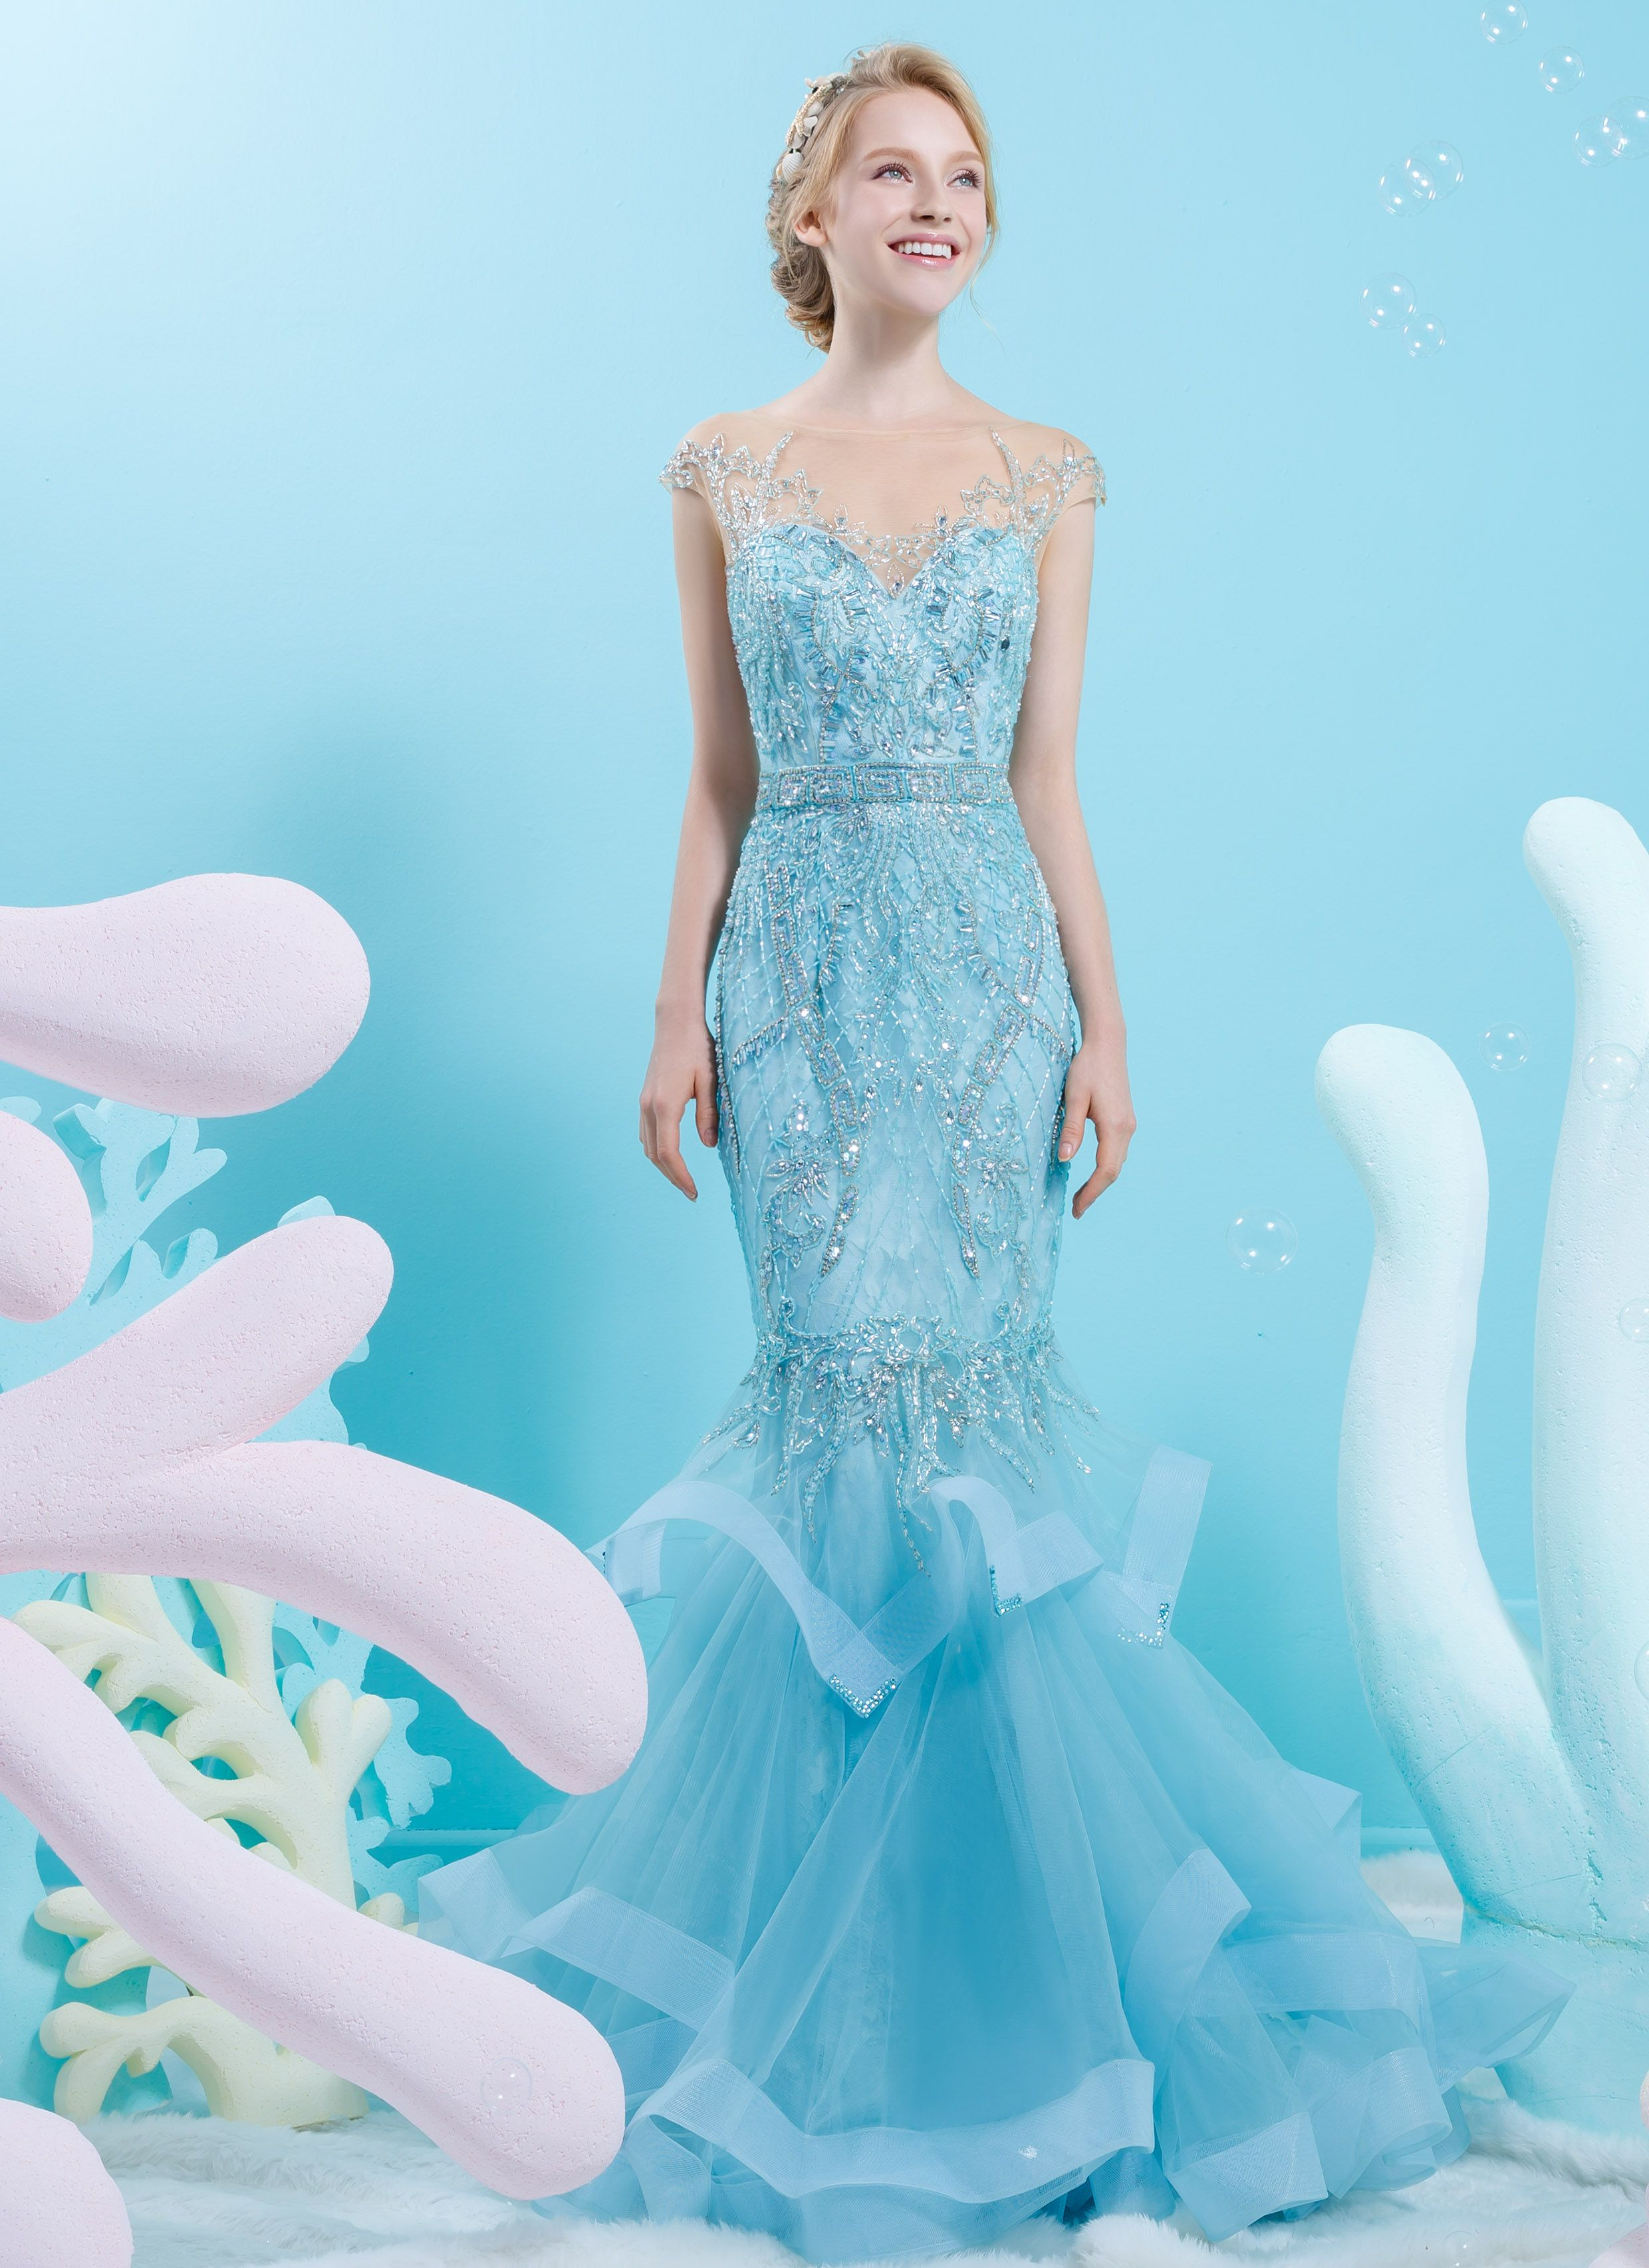 evening gown | Happily Ever After | Pinterest | Gowns, Pastels and ...